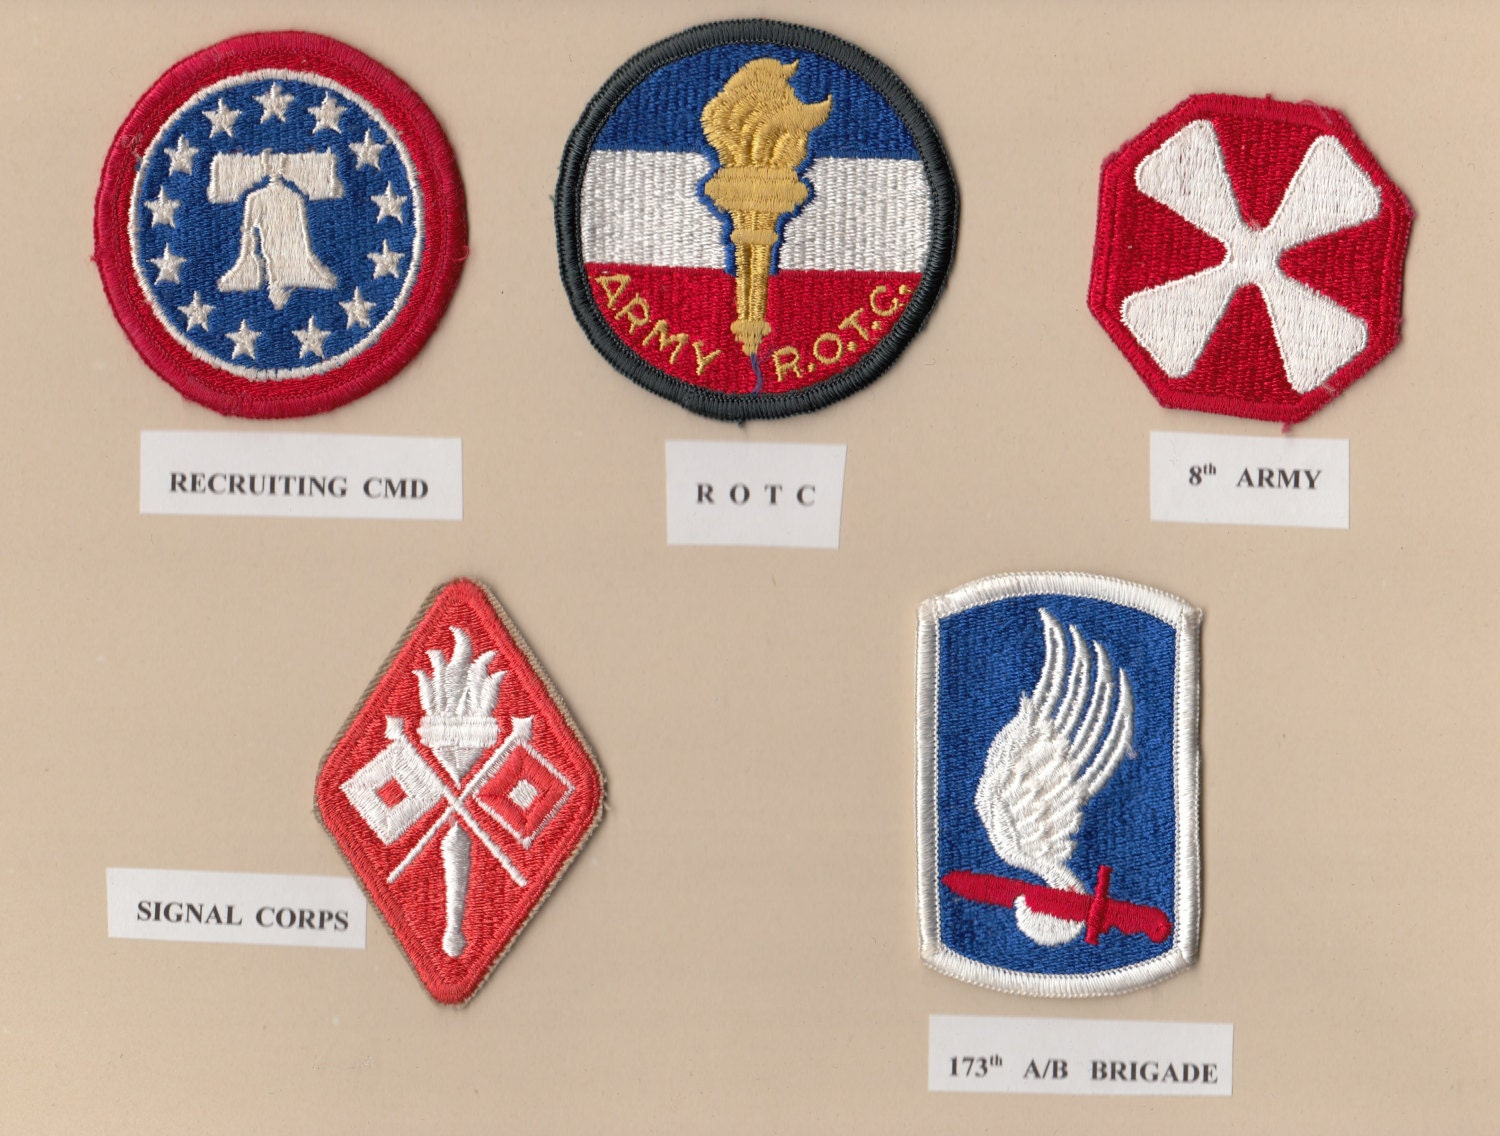 5 Us Patches: Recruiting Cmd, Army Rotc, 8th Army, Signal Corps,